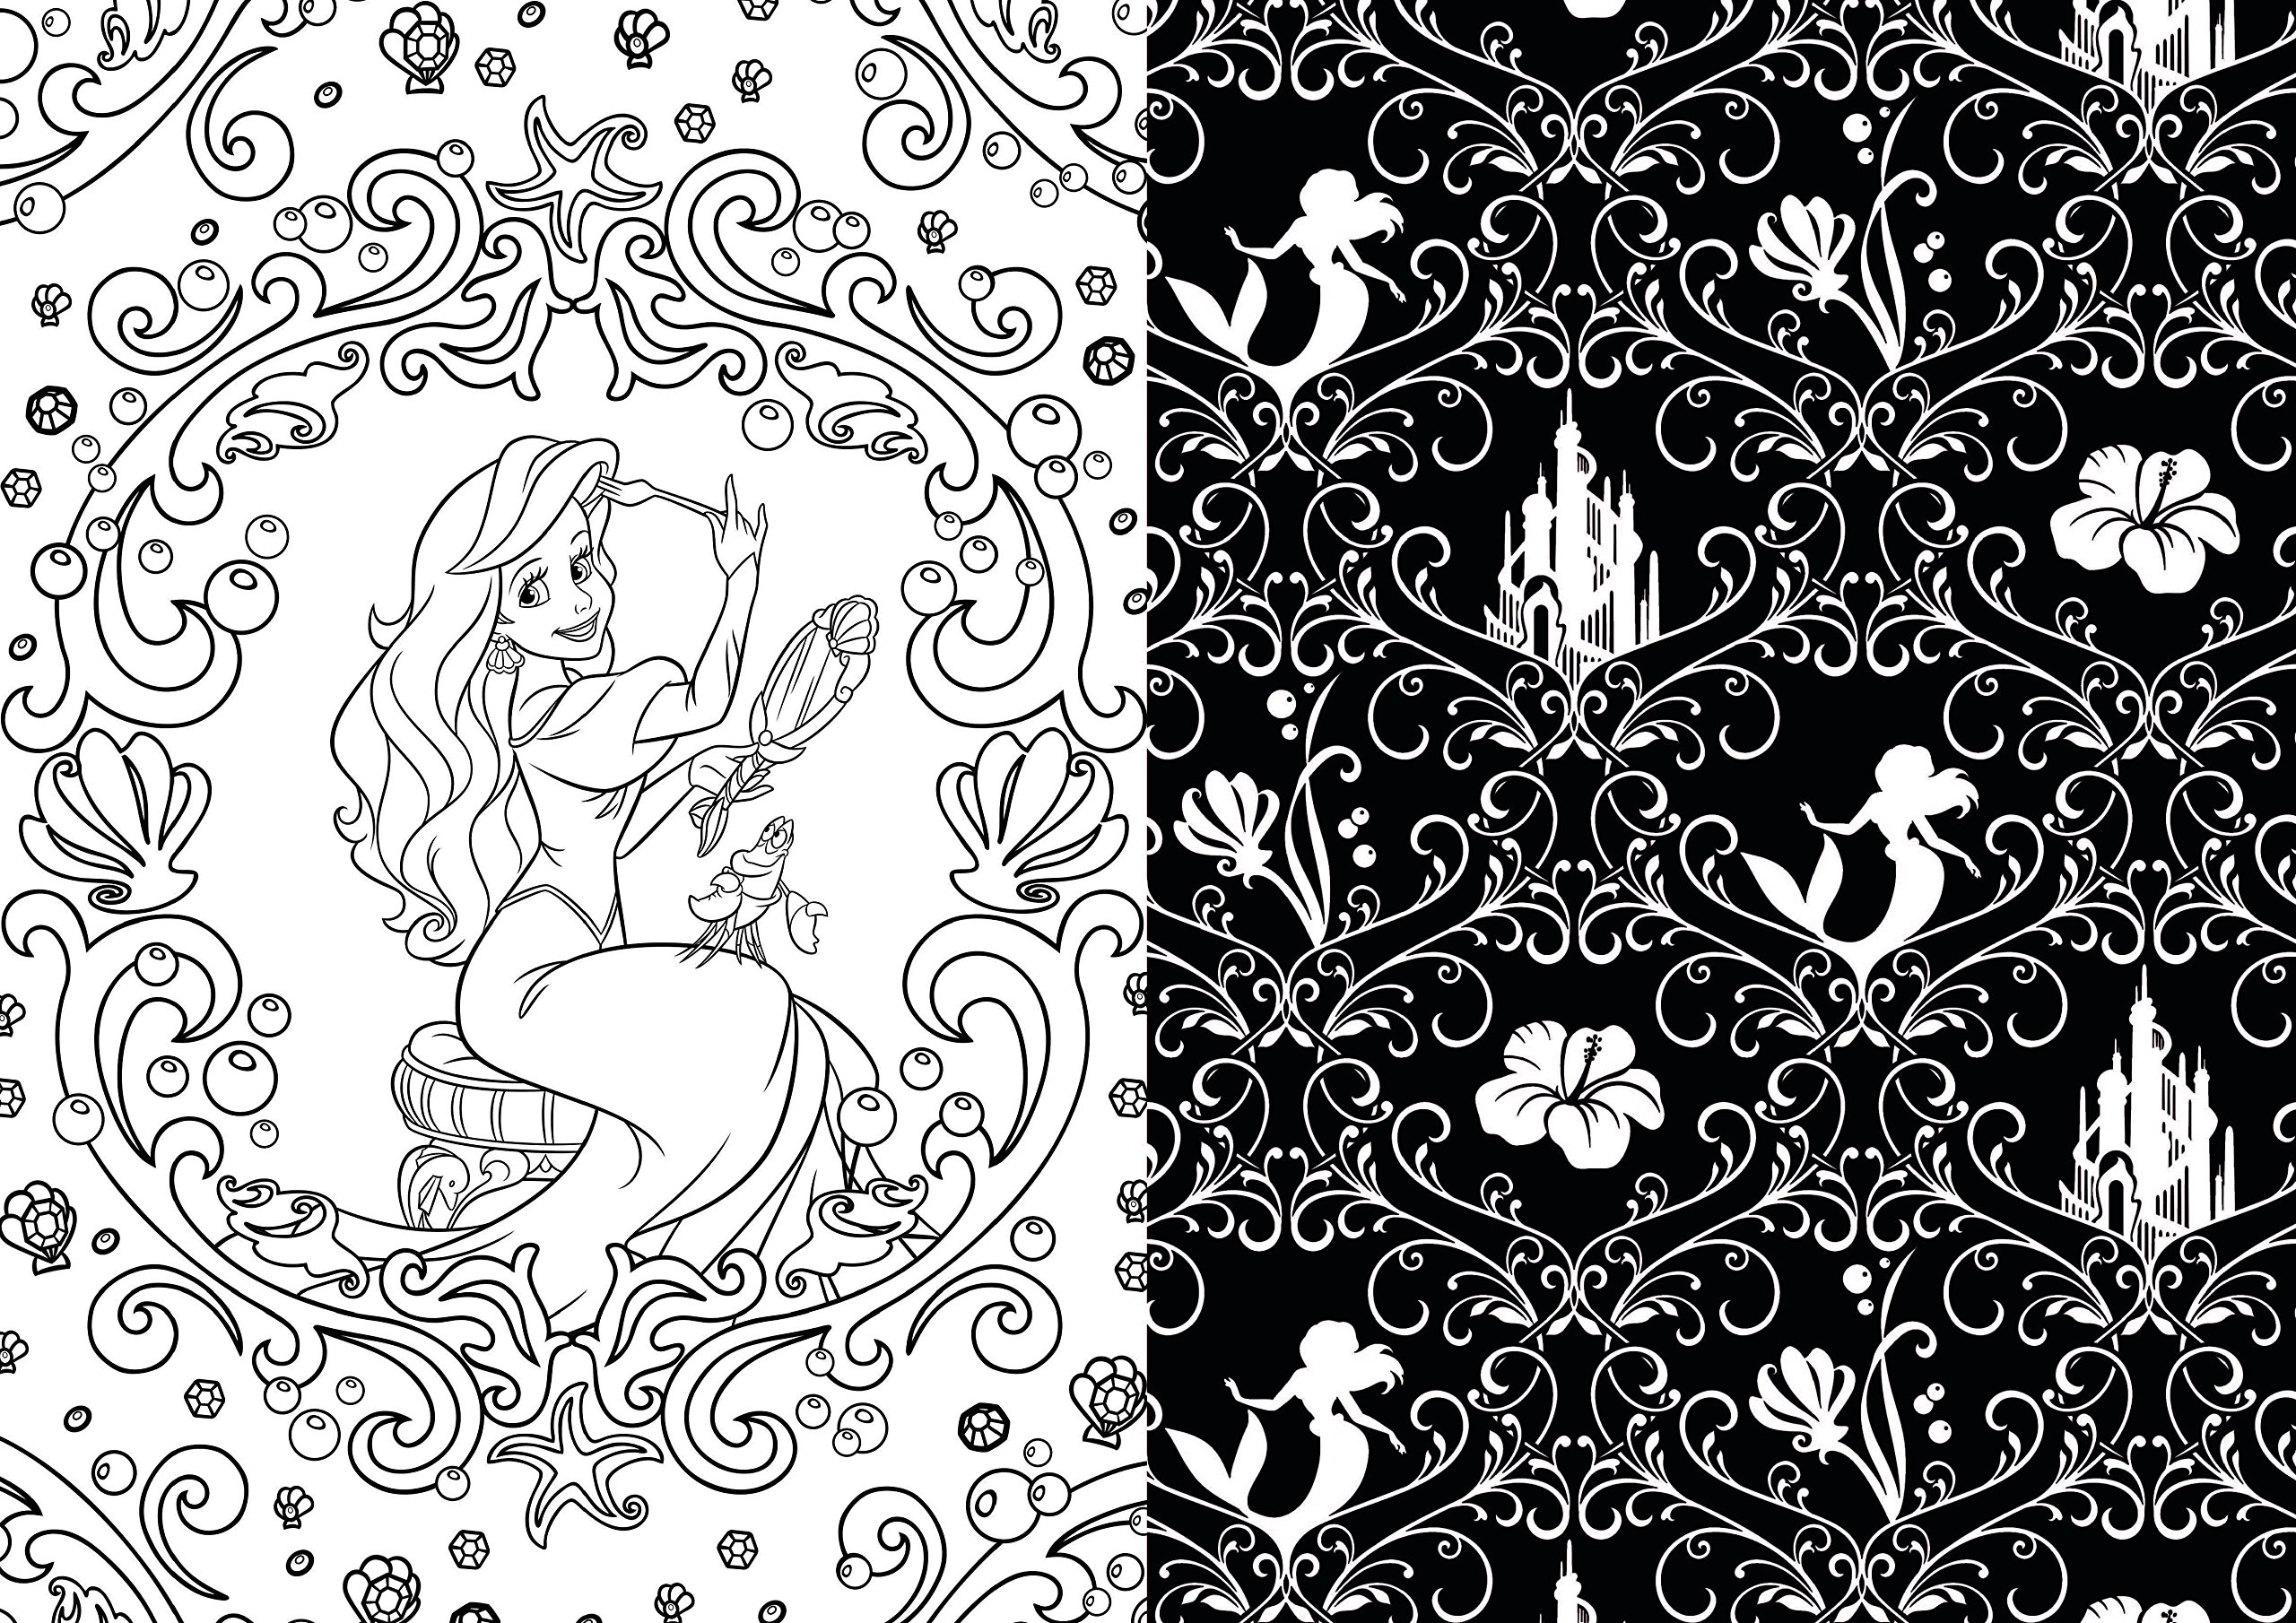 Zen colouring advanced art therapy collector edition - Art Of Coloring Disney Princess 100 Images To Inspire Creativity And Relaxation Art Therapy Catherine Saunier Talec Anne Le Meur 0725961057404